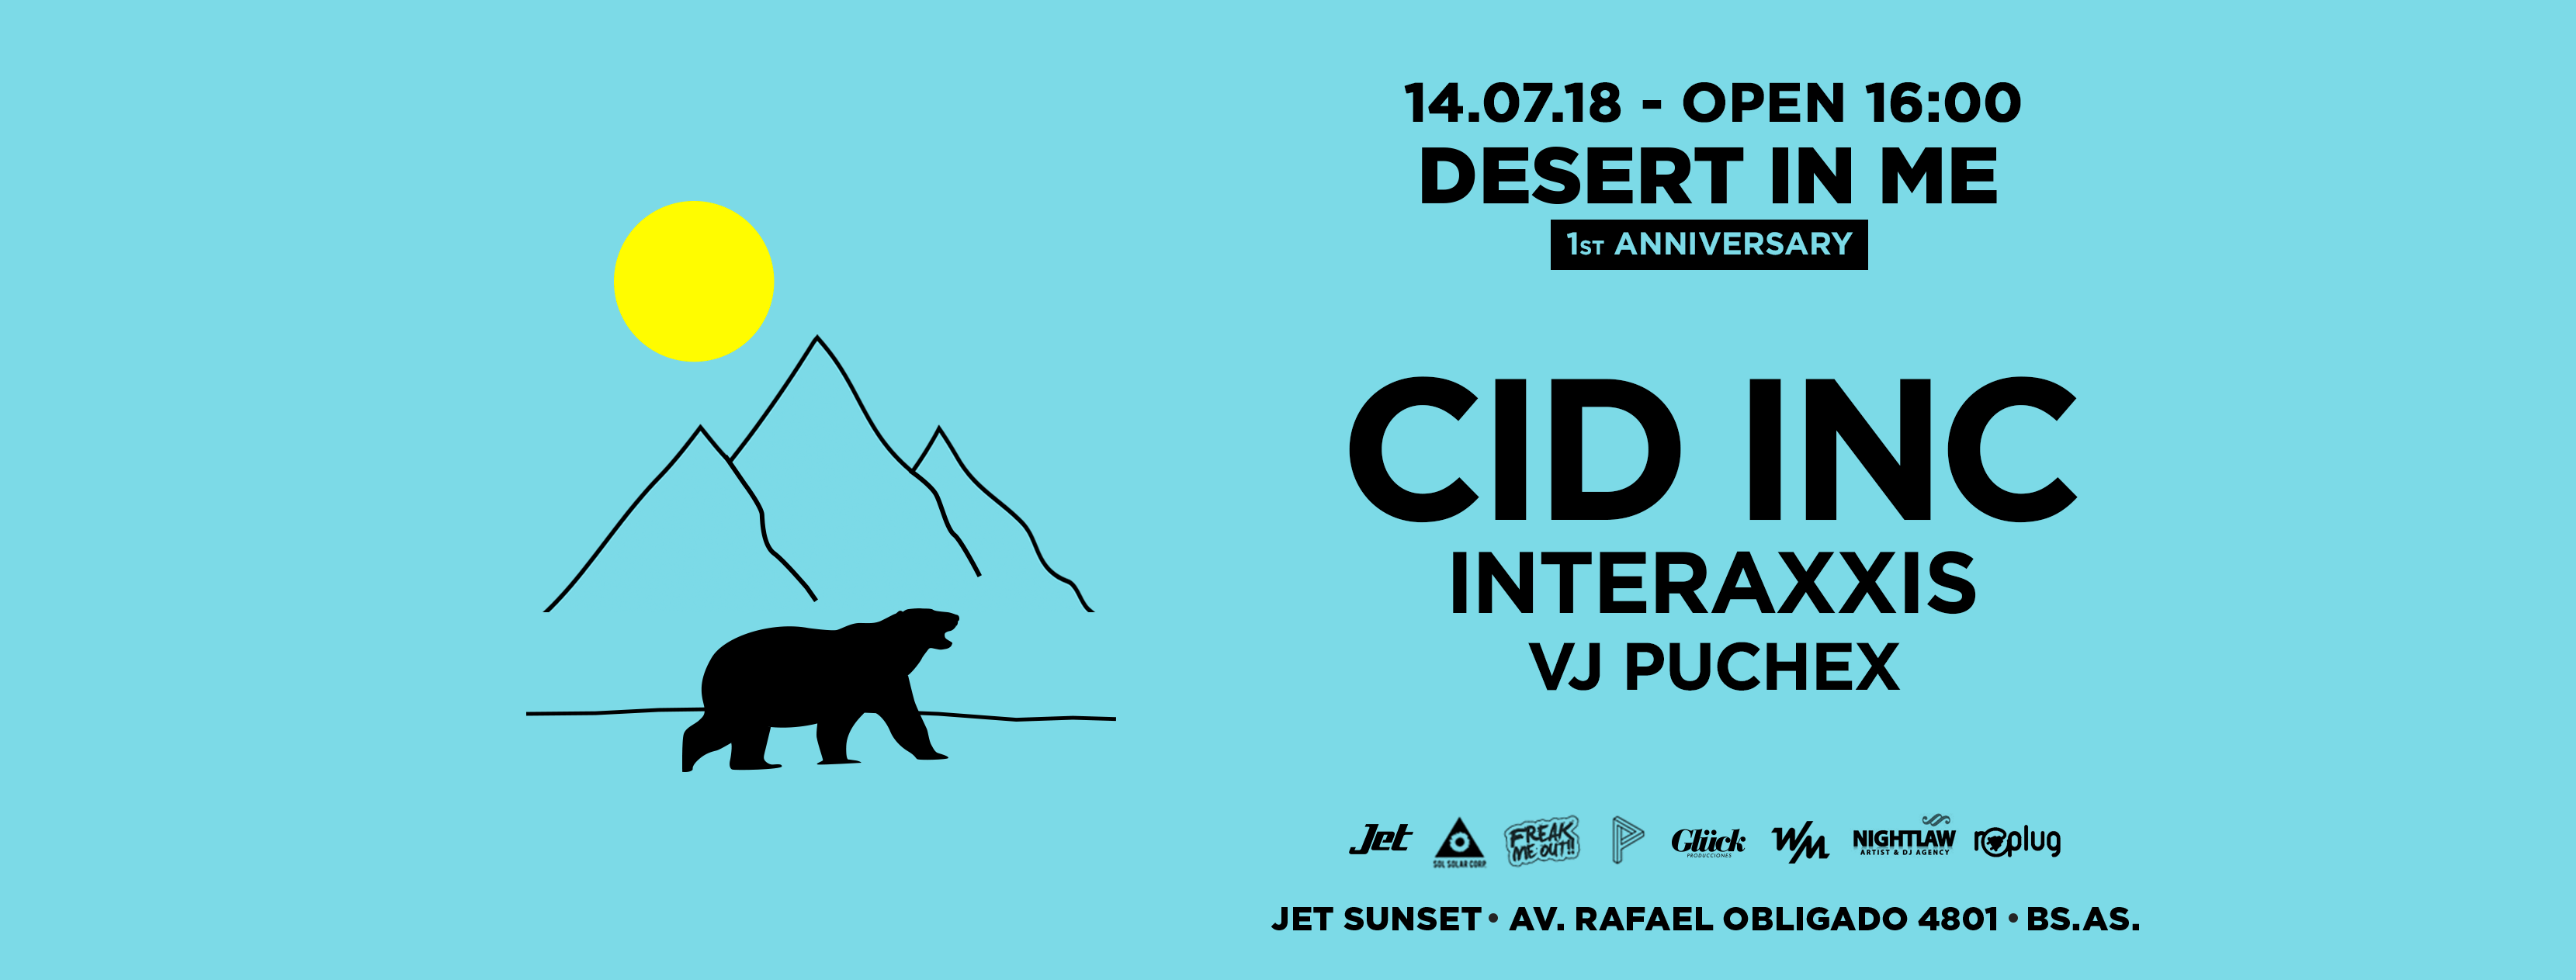 download → Cid Inc - Desert In Me 1st Anniversary (Buenos Aires) - 720p - 14-Jul-2018